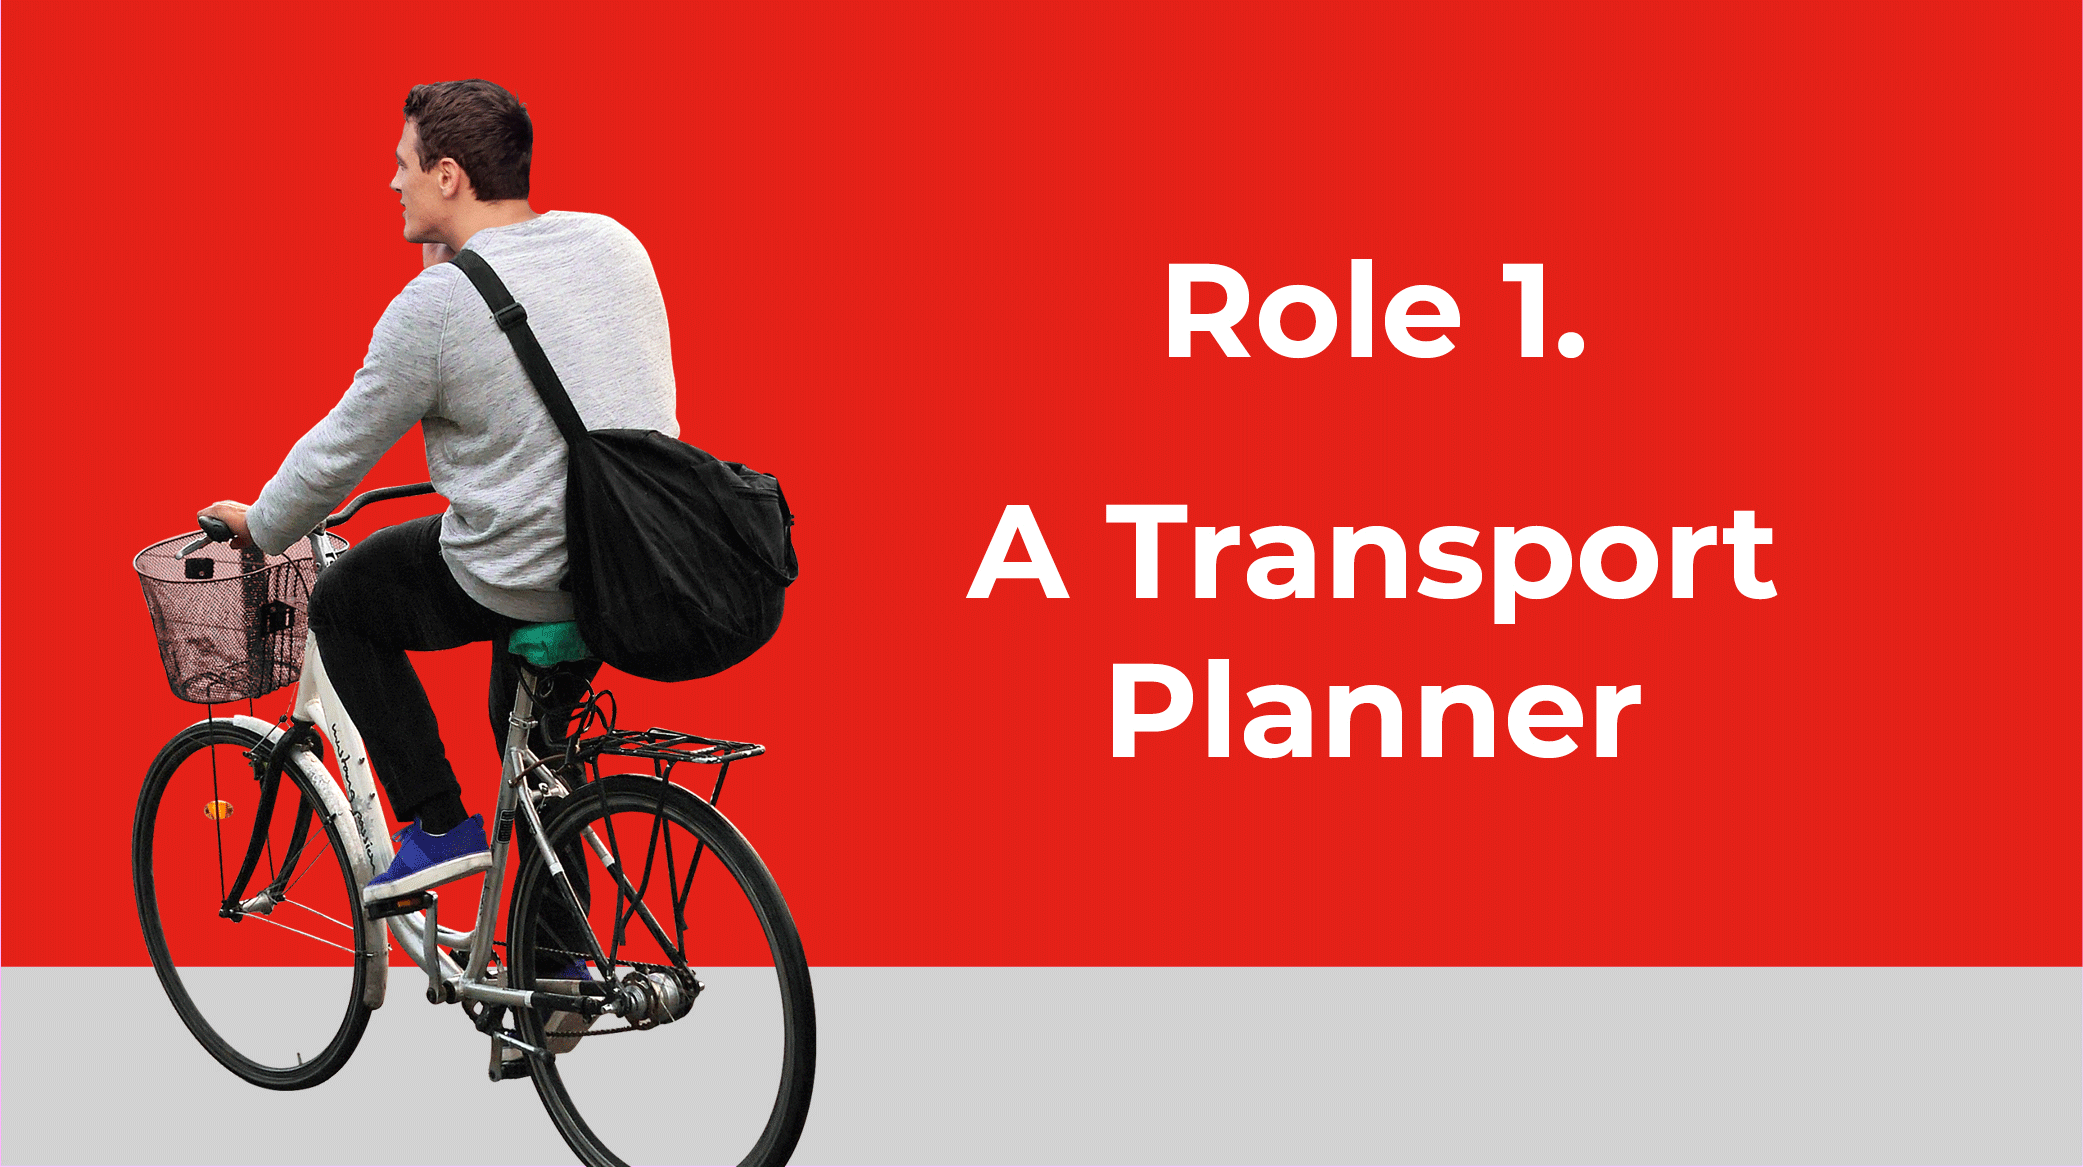 Limerick Cycling Campaign is requesting a Transport planner